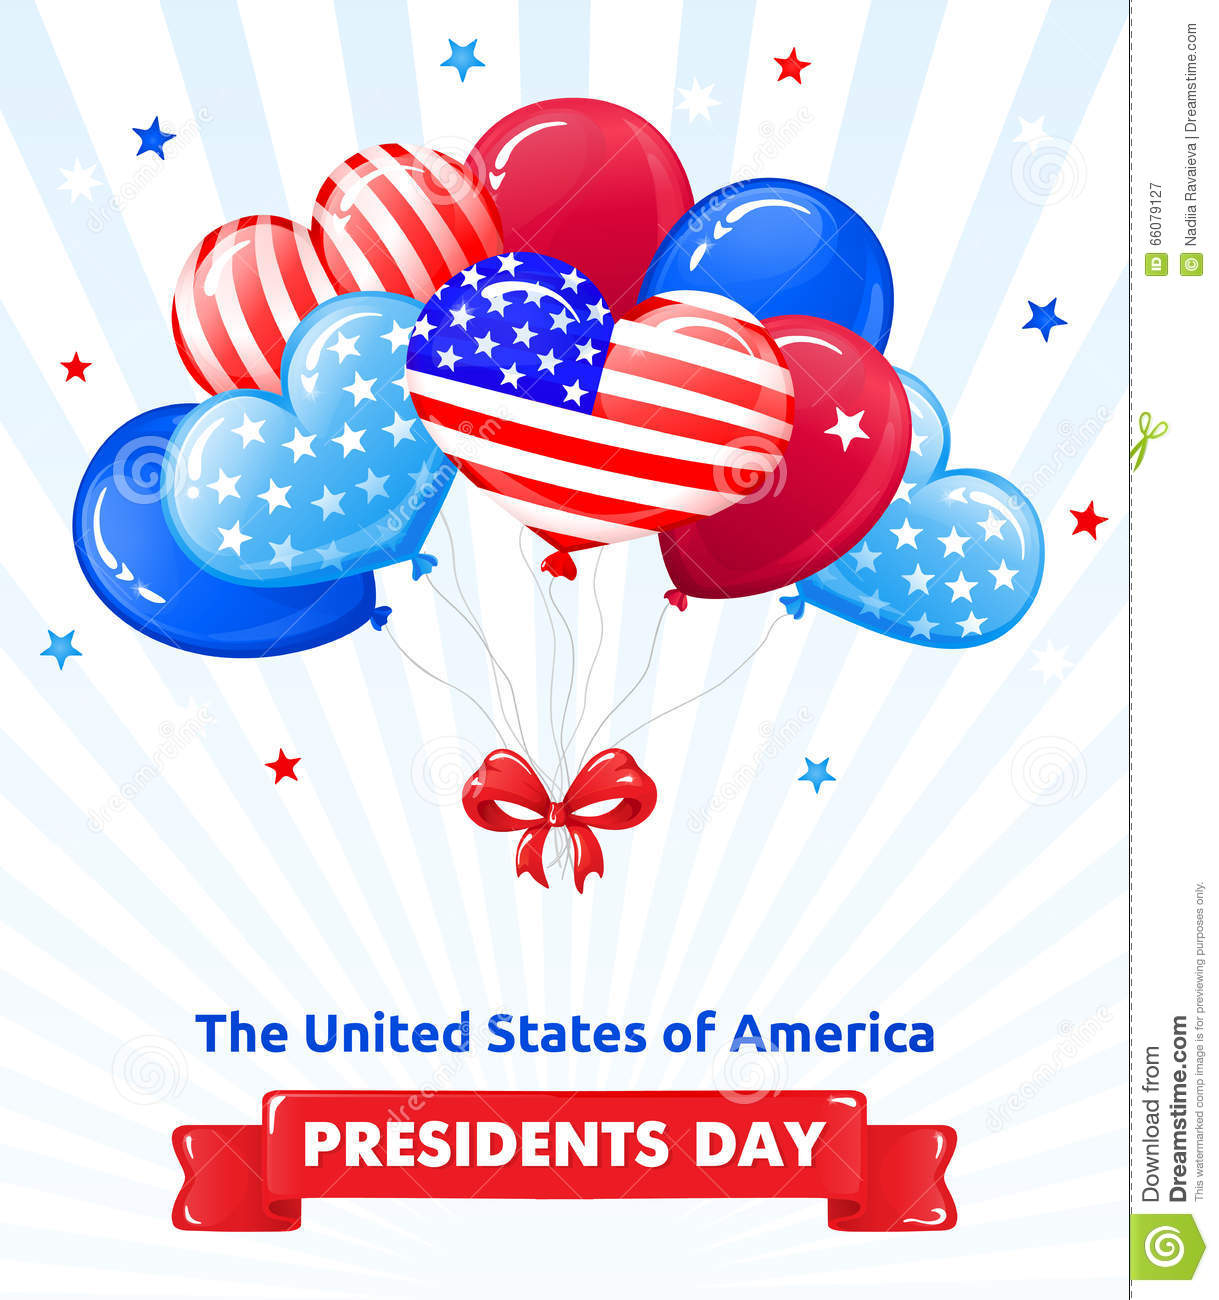 Extended Presidents Day: PRESIDENTS DAY In The USA Stock Vector. Illustration Of